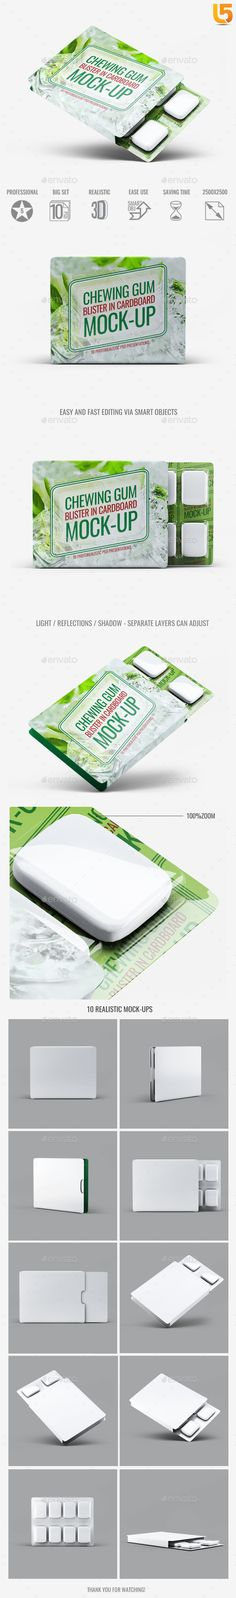 Chewing Gum Blister in Cardboard Mock-Up